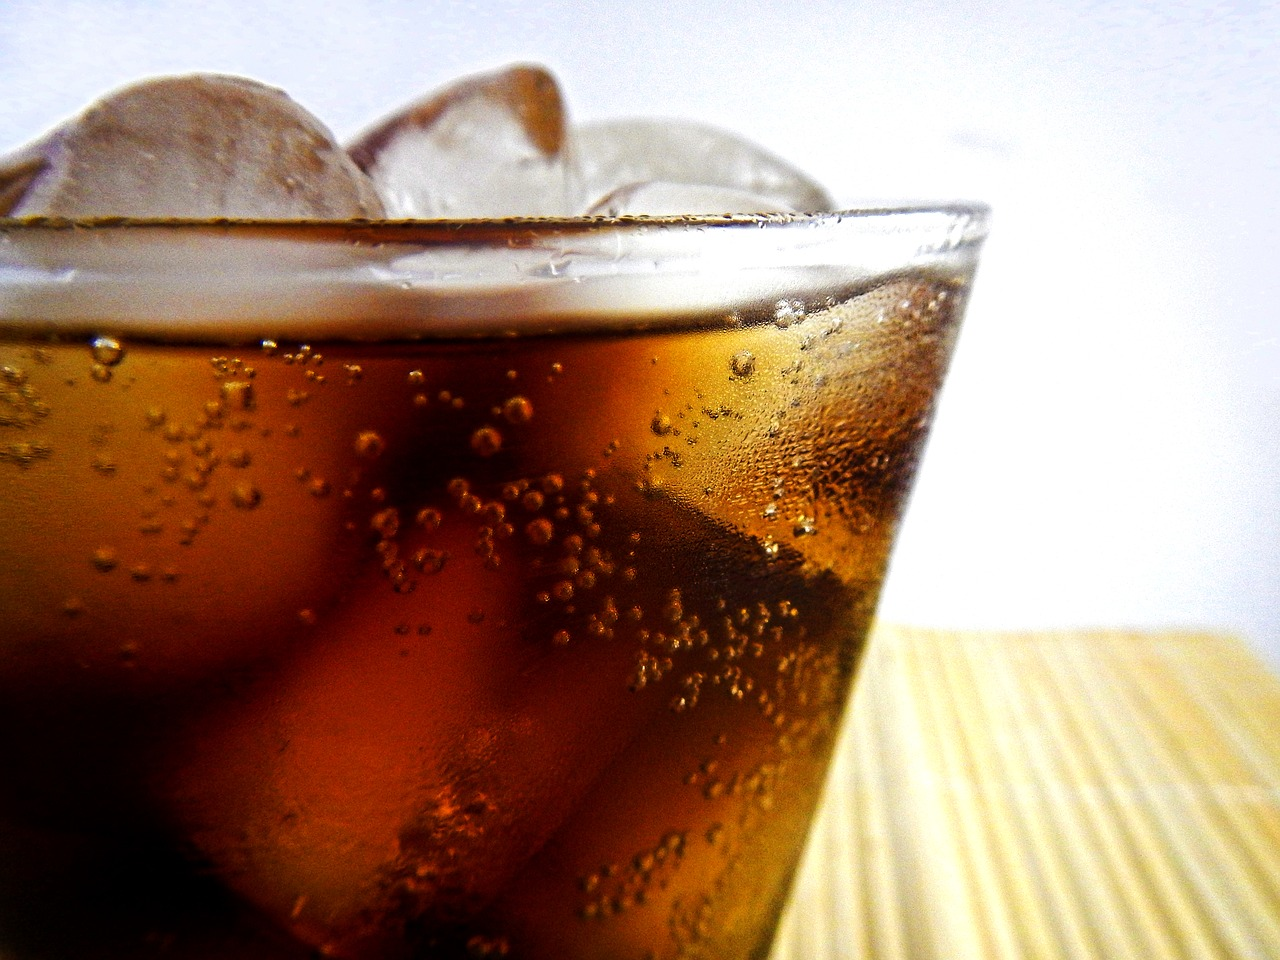 File: The consumption of sugary drinks has exploded worldwide and the high-calorie beverages have already been associated with an elevated risk of obesity.